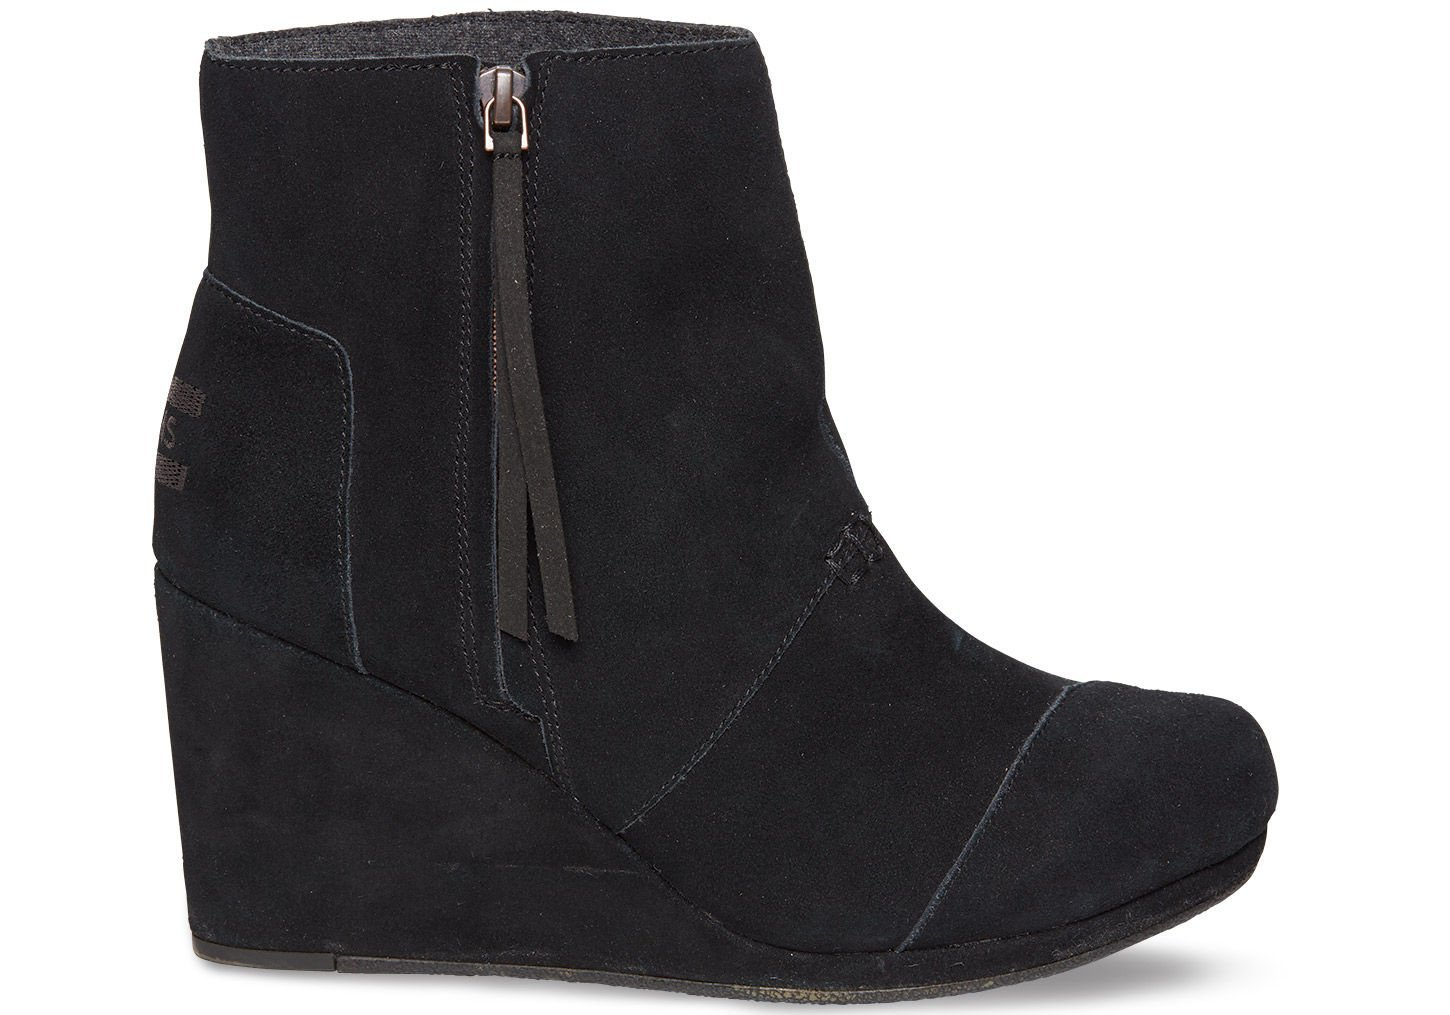 Toms Desert Wedge High Boot